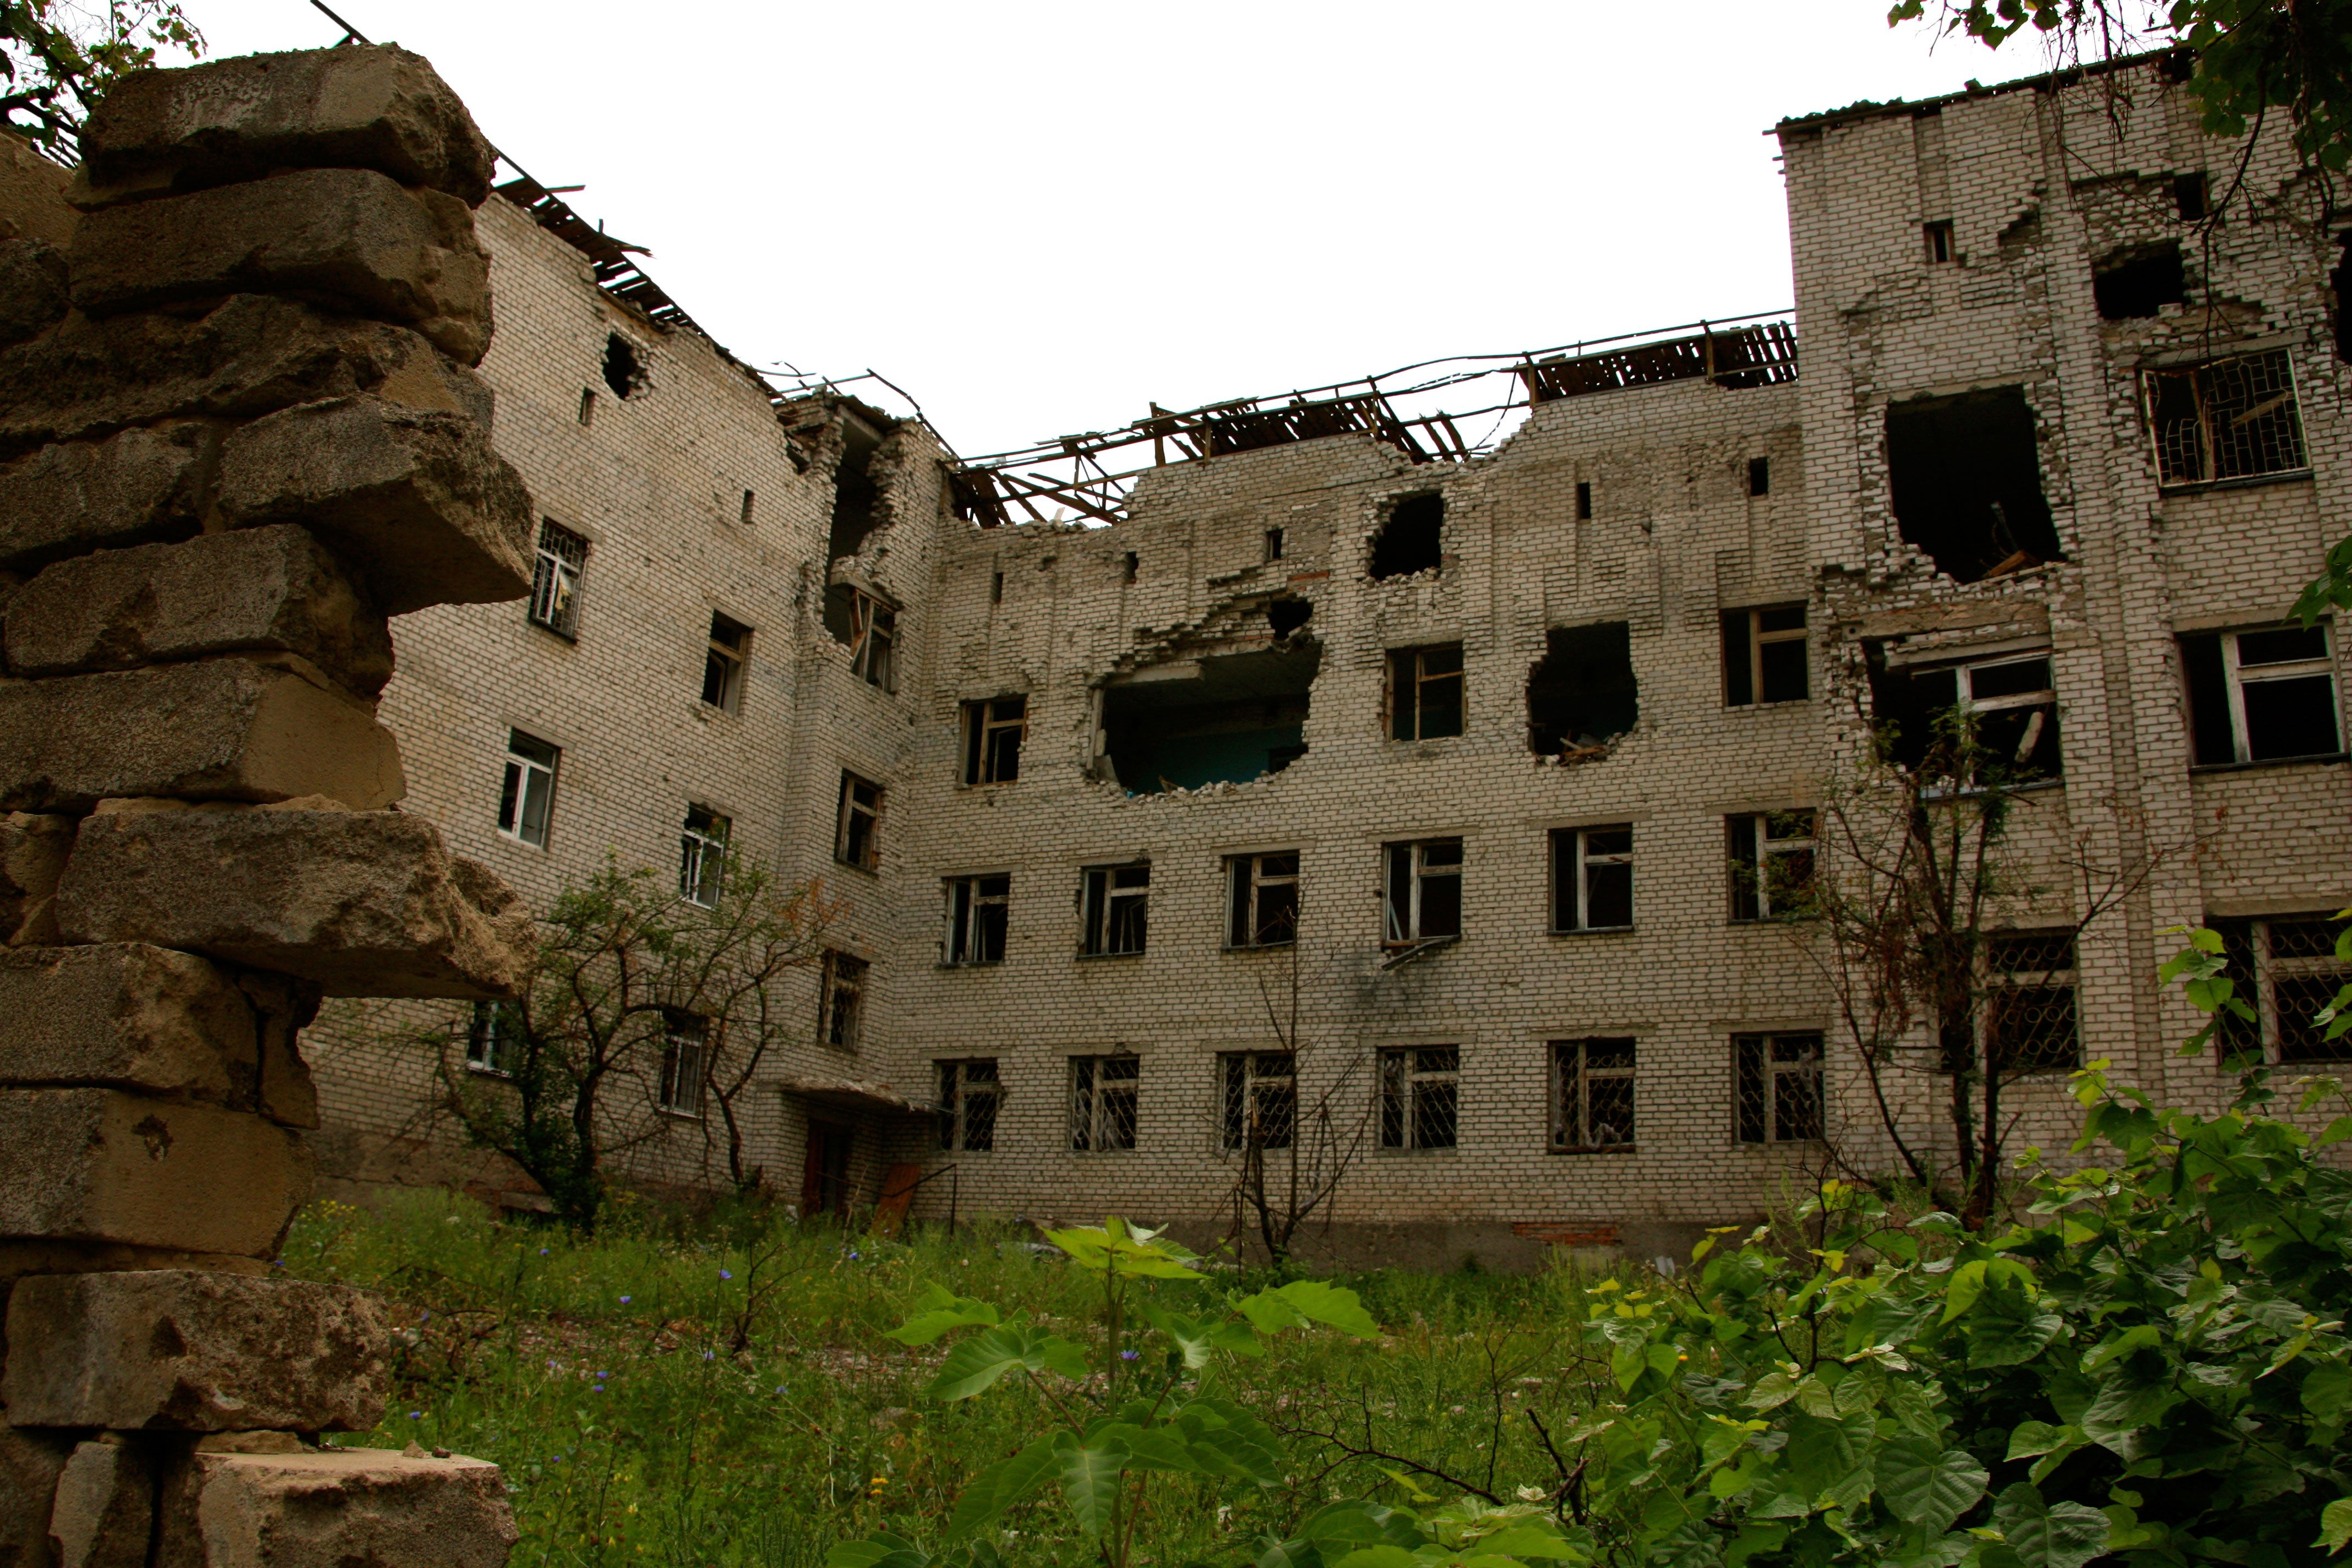 After more than two years of war, many villages in eastern Ukraine have been scarred by battle.